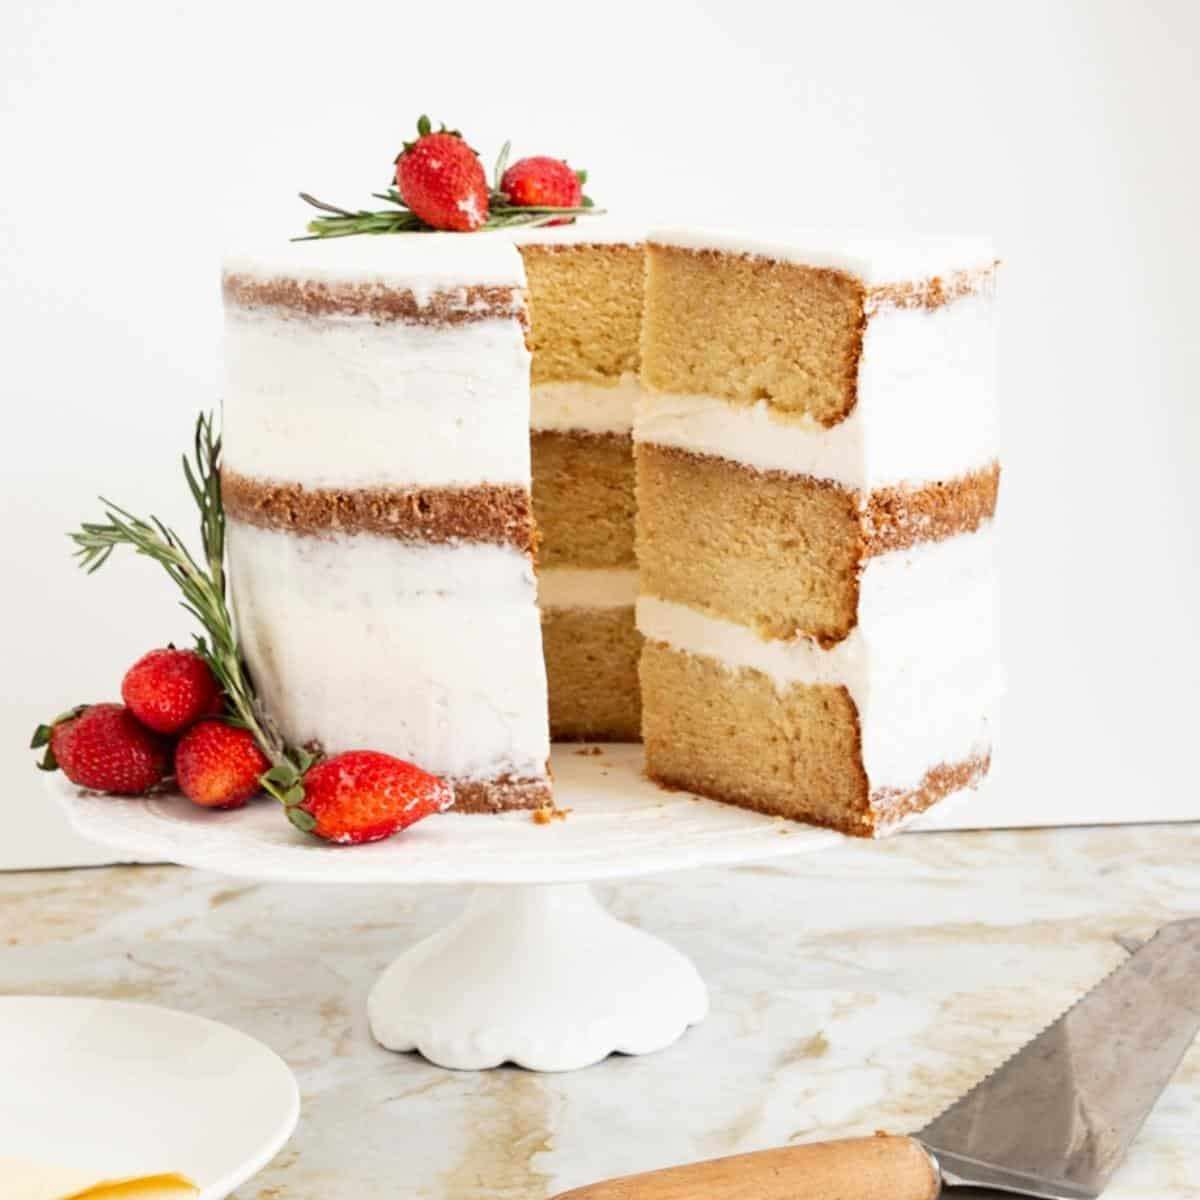 A sliced vanilla cake on the cake stand.